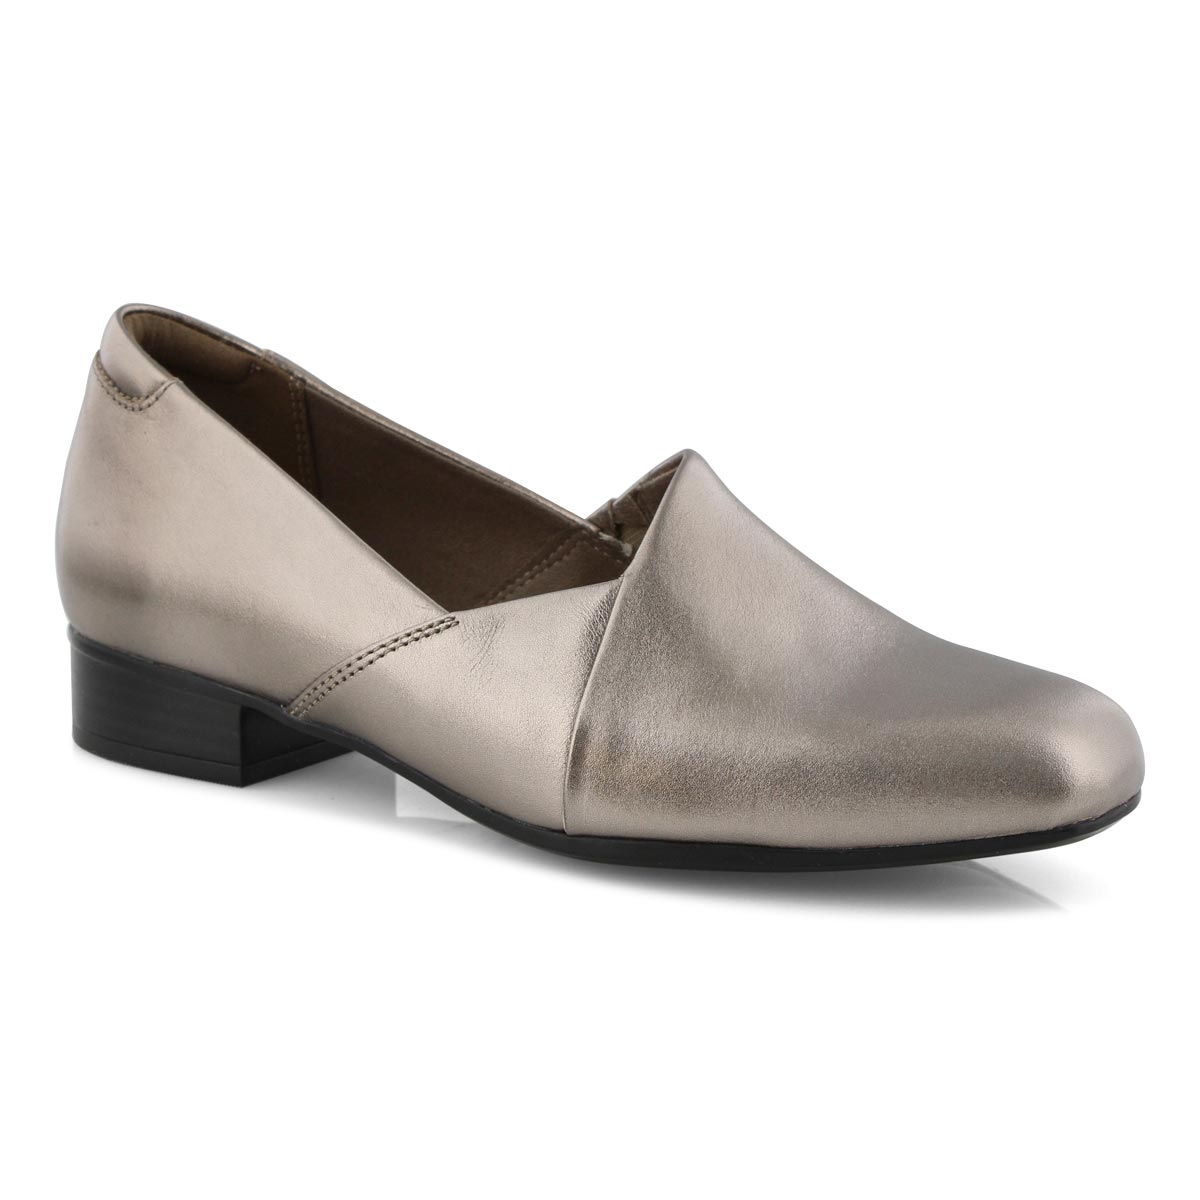 Lds Juliet Palm pewter slipon dress heel